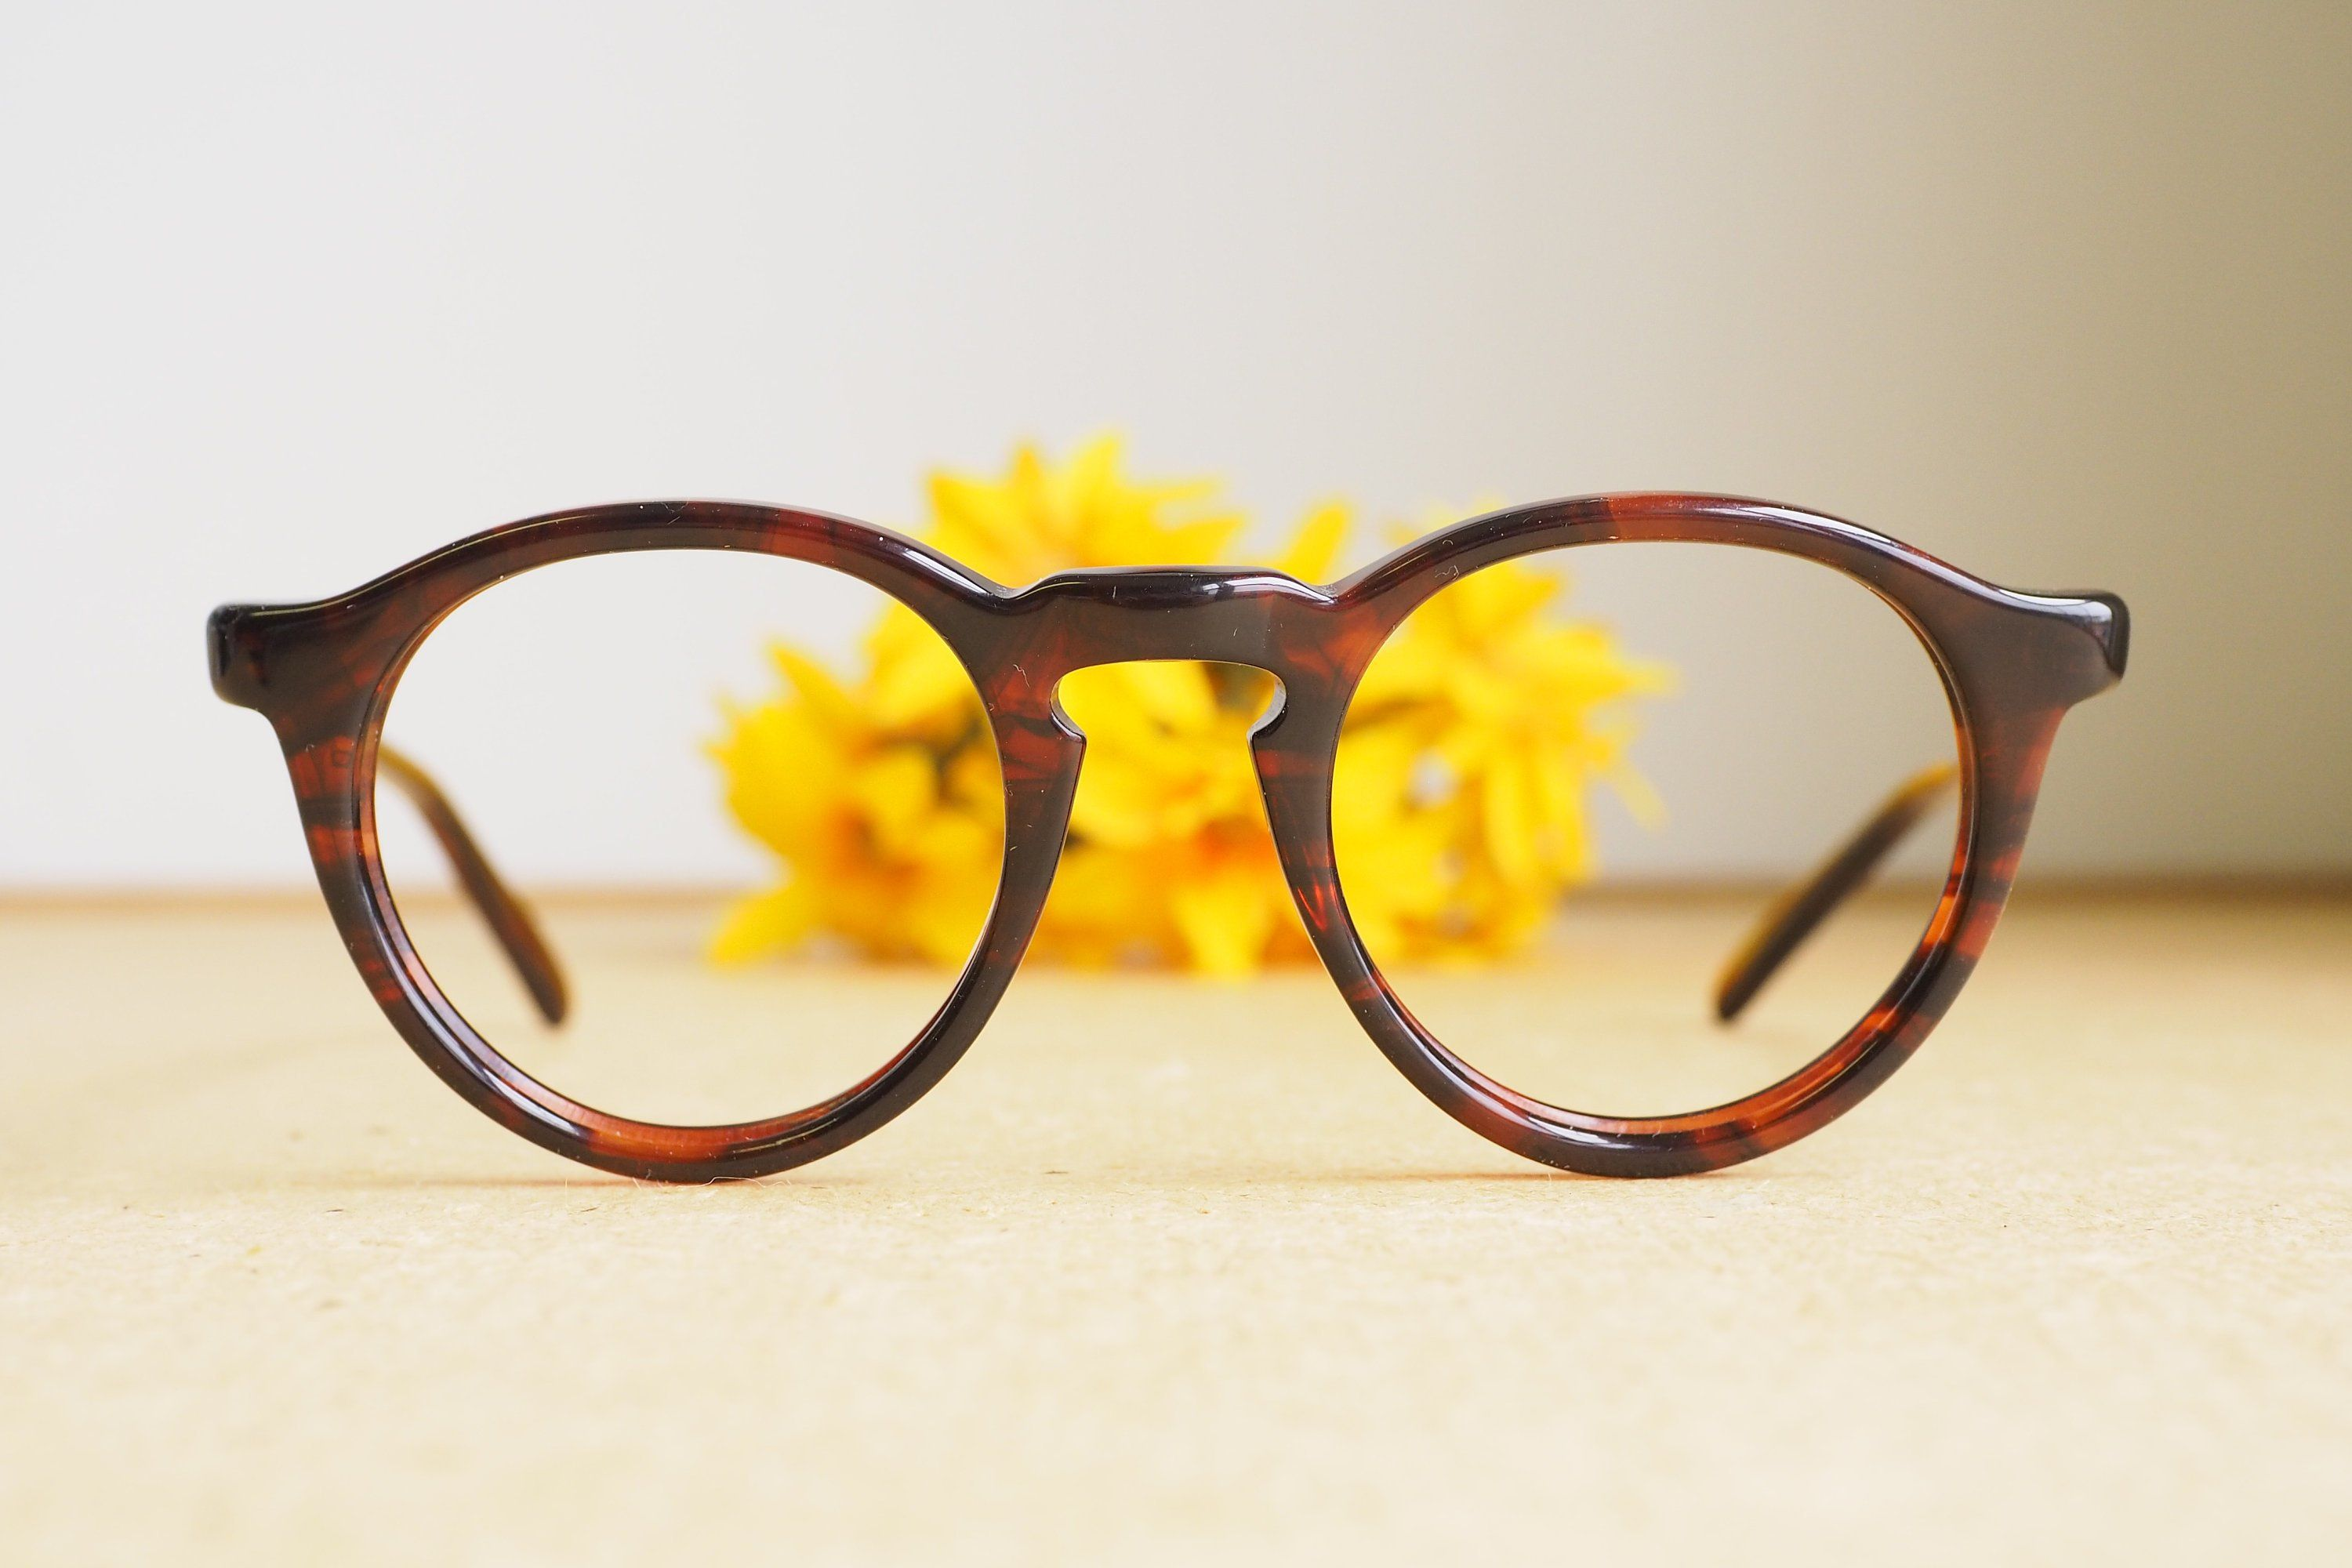 Vintage May Optical Eyeglasses 1970s/Glasses/Safety Etsy